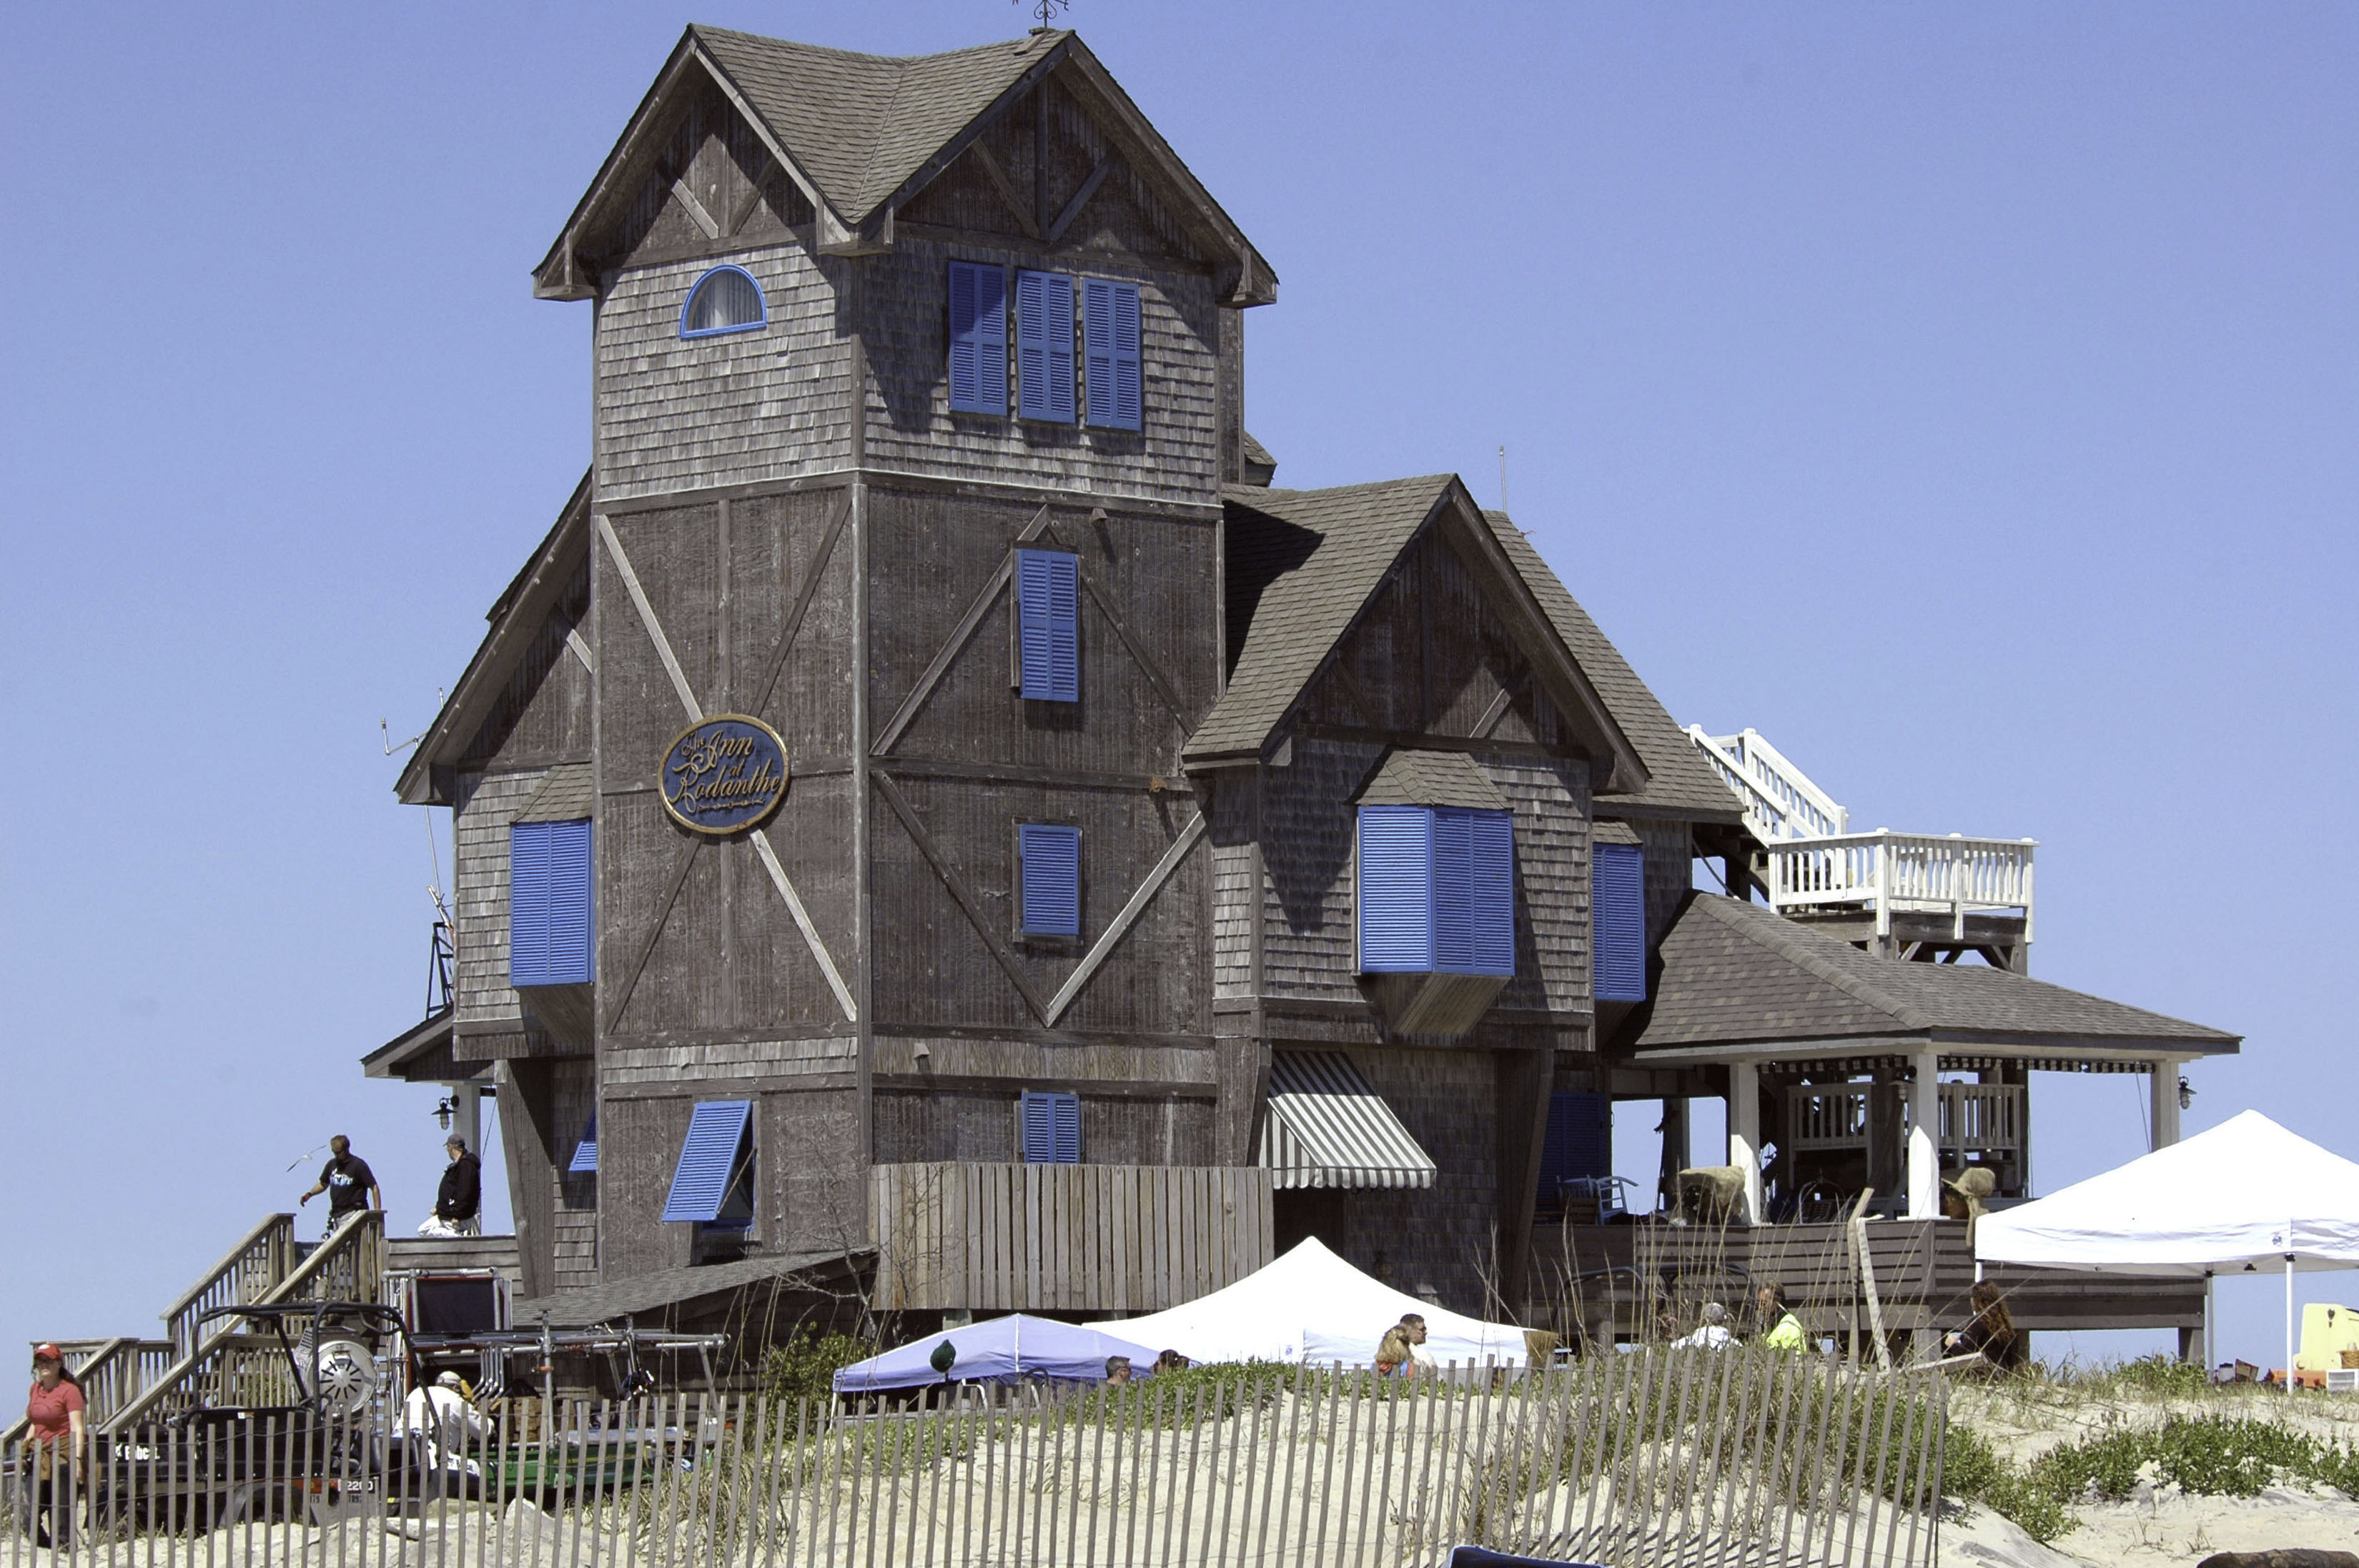 Awe Inspiring Romantic Getaways On The Outer Banks Nc Home Interior And Landscaping Ponolsignezvosmurscom